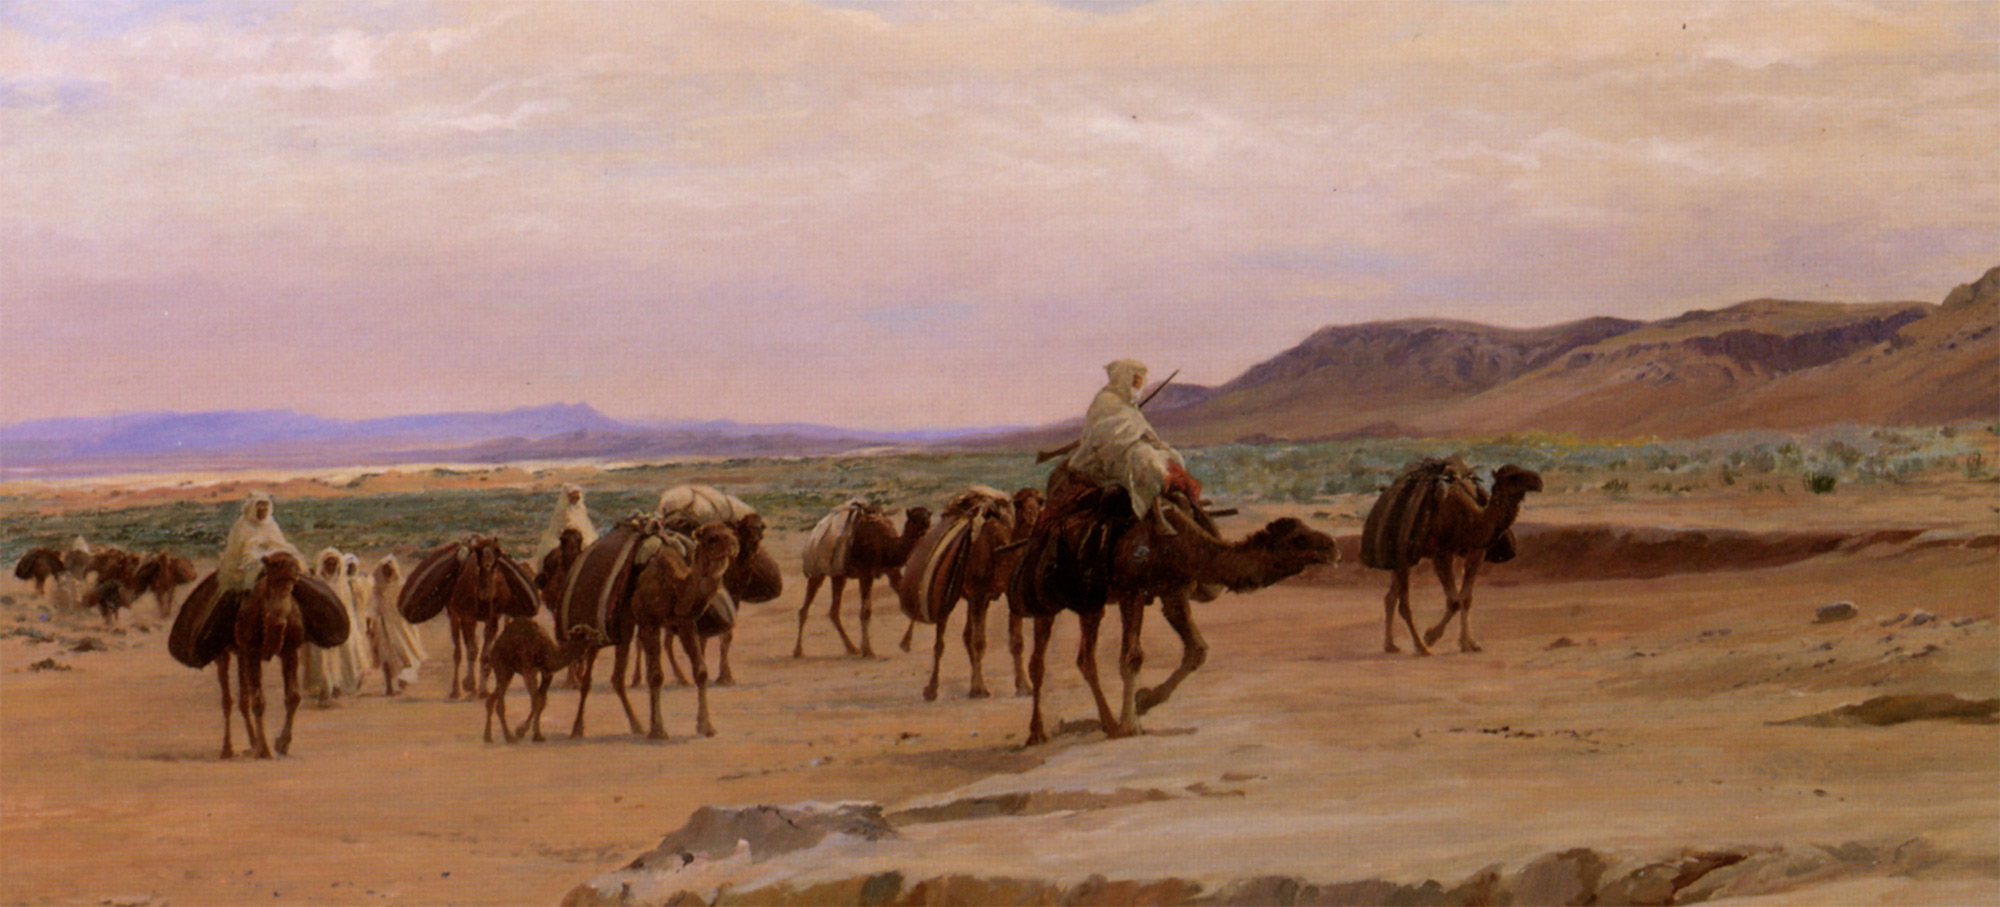 Eugene Girardet ALexis Caravannes De Sel Dans Le Desert Oil On Canvas-huge